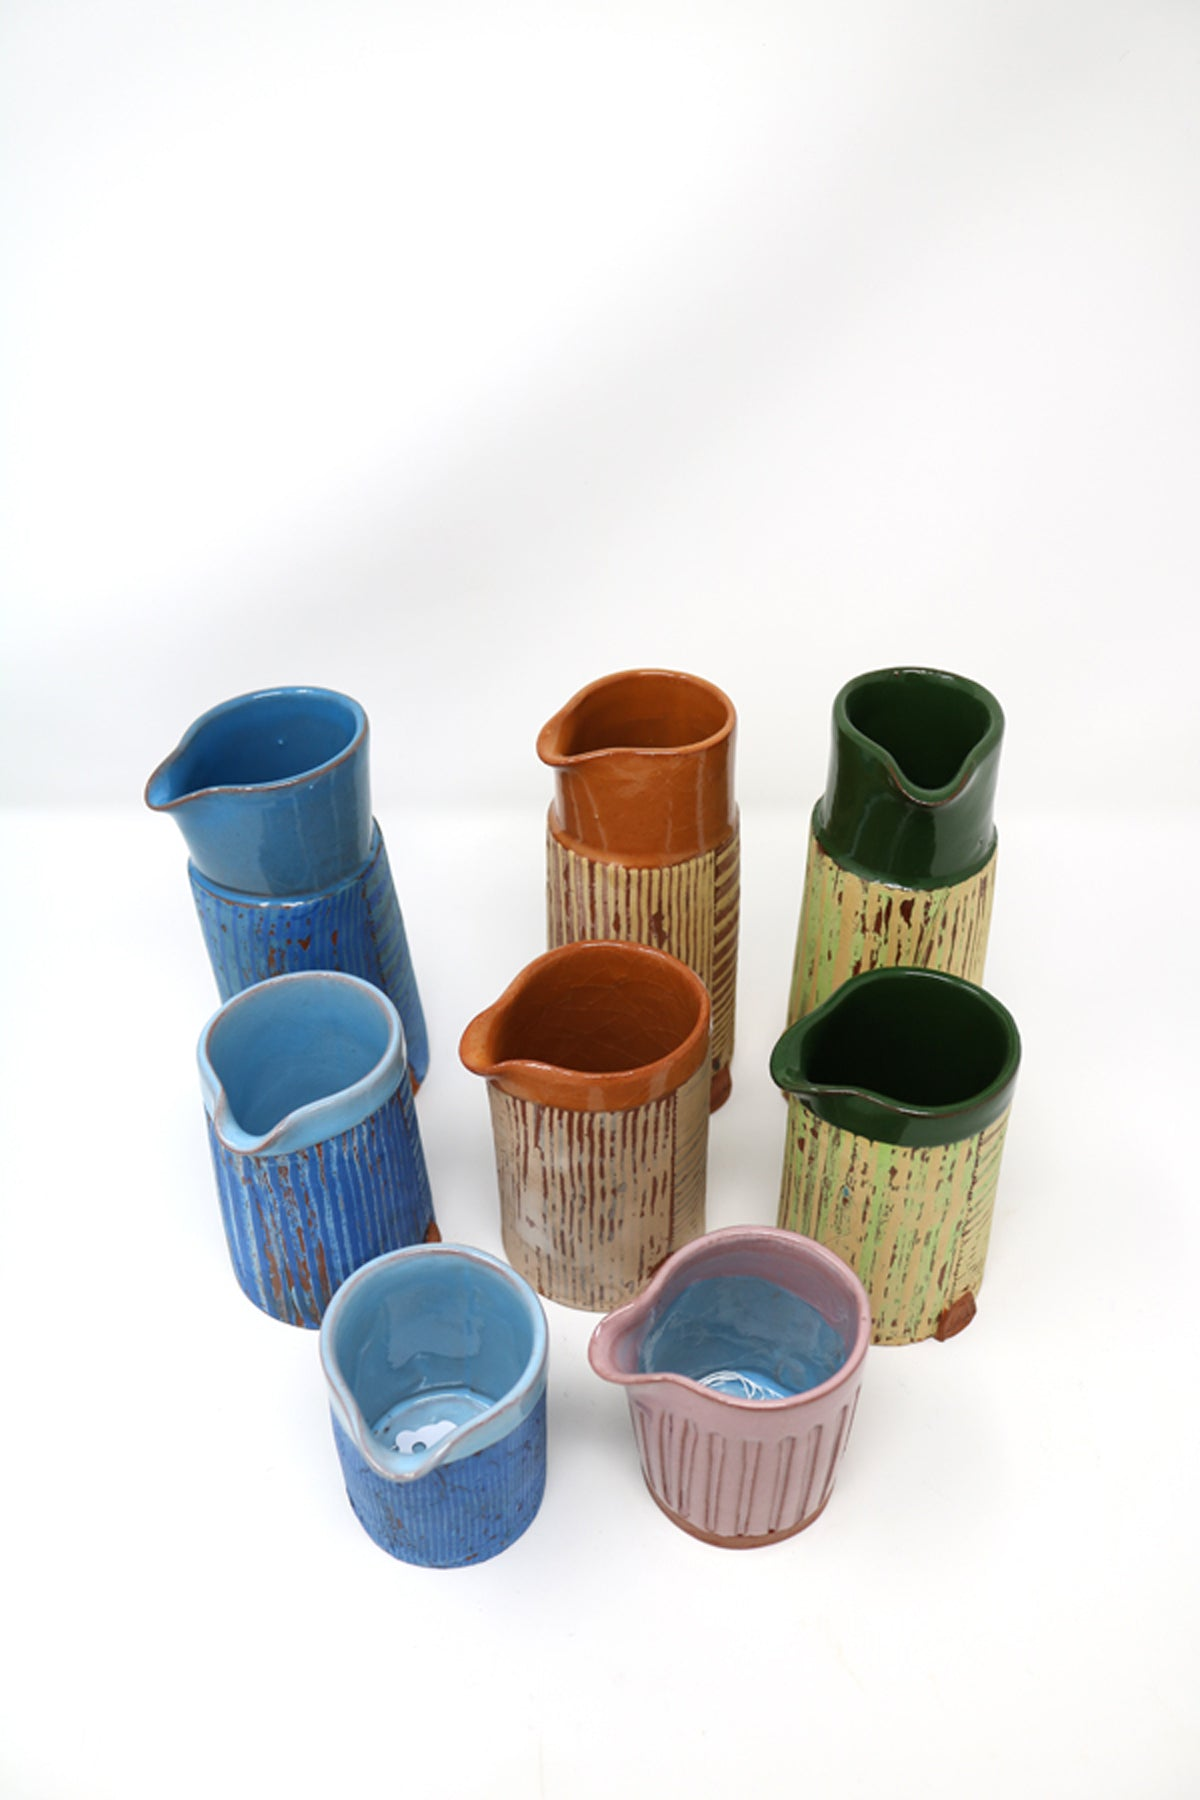 Glazed Ceramic Milk jugs or creamers made in Donegal  - choose your colour: Blue, pink, green or brown/cream and choose your size: large (14.5x5.5cm), medium (10cmx5.5cm) or small (7x5.5cm)